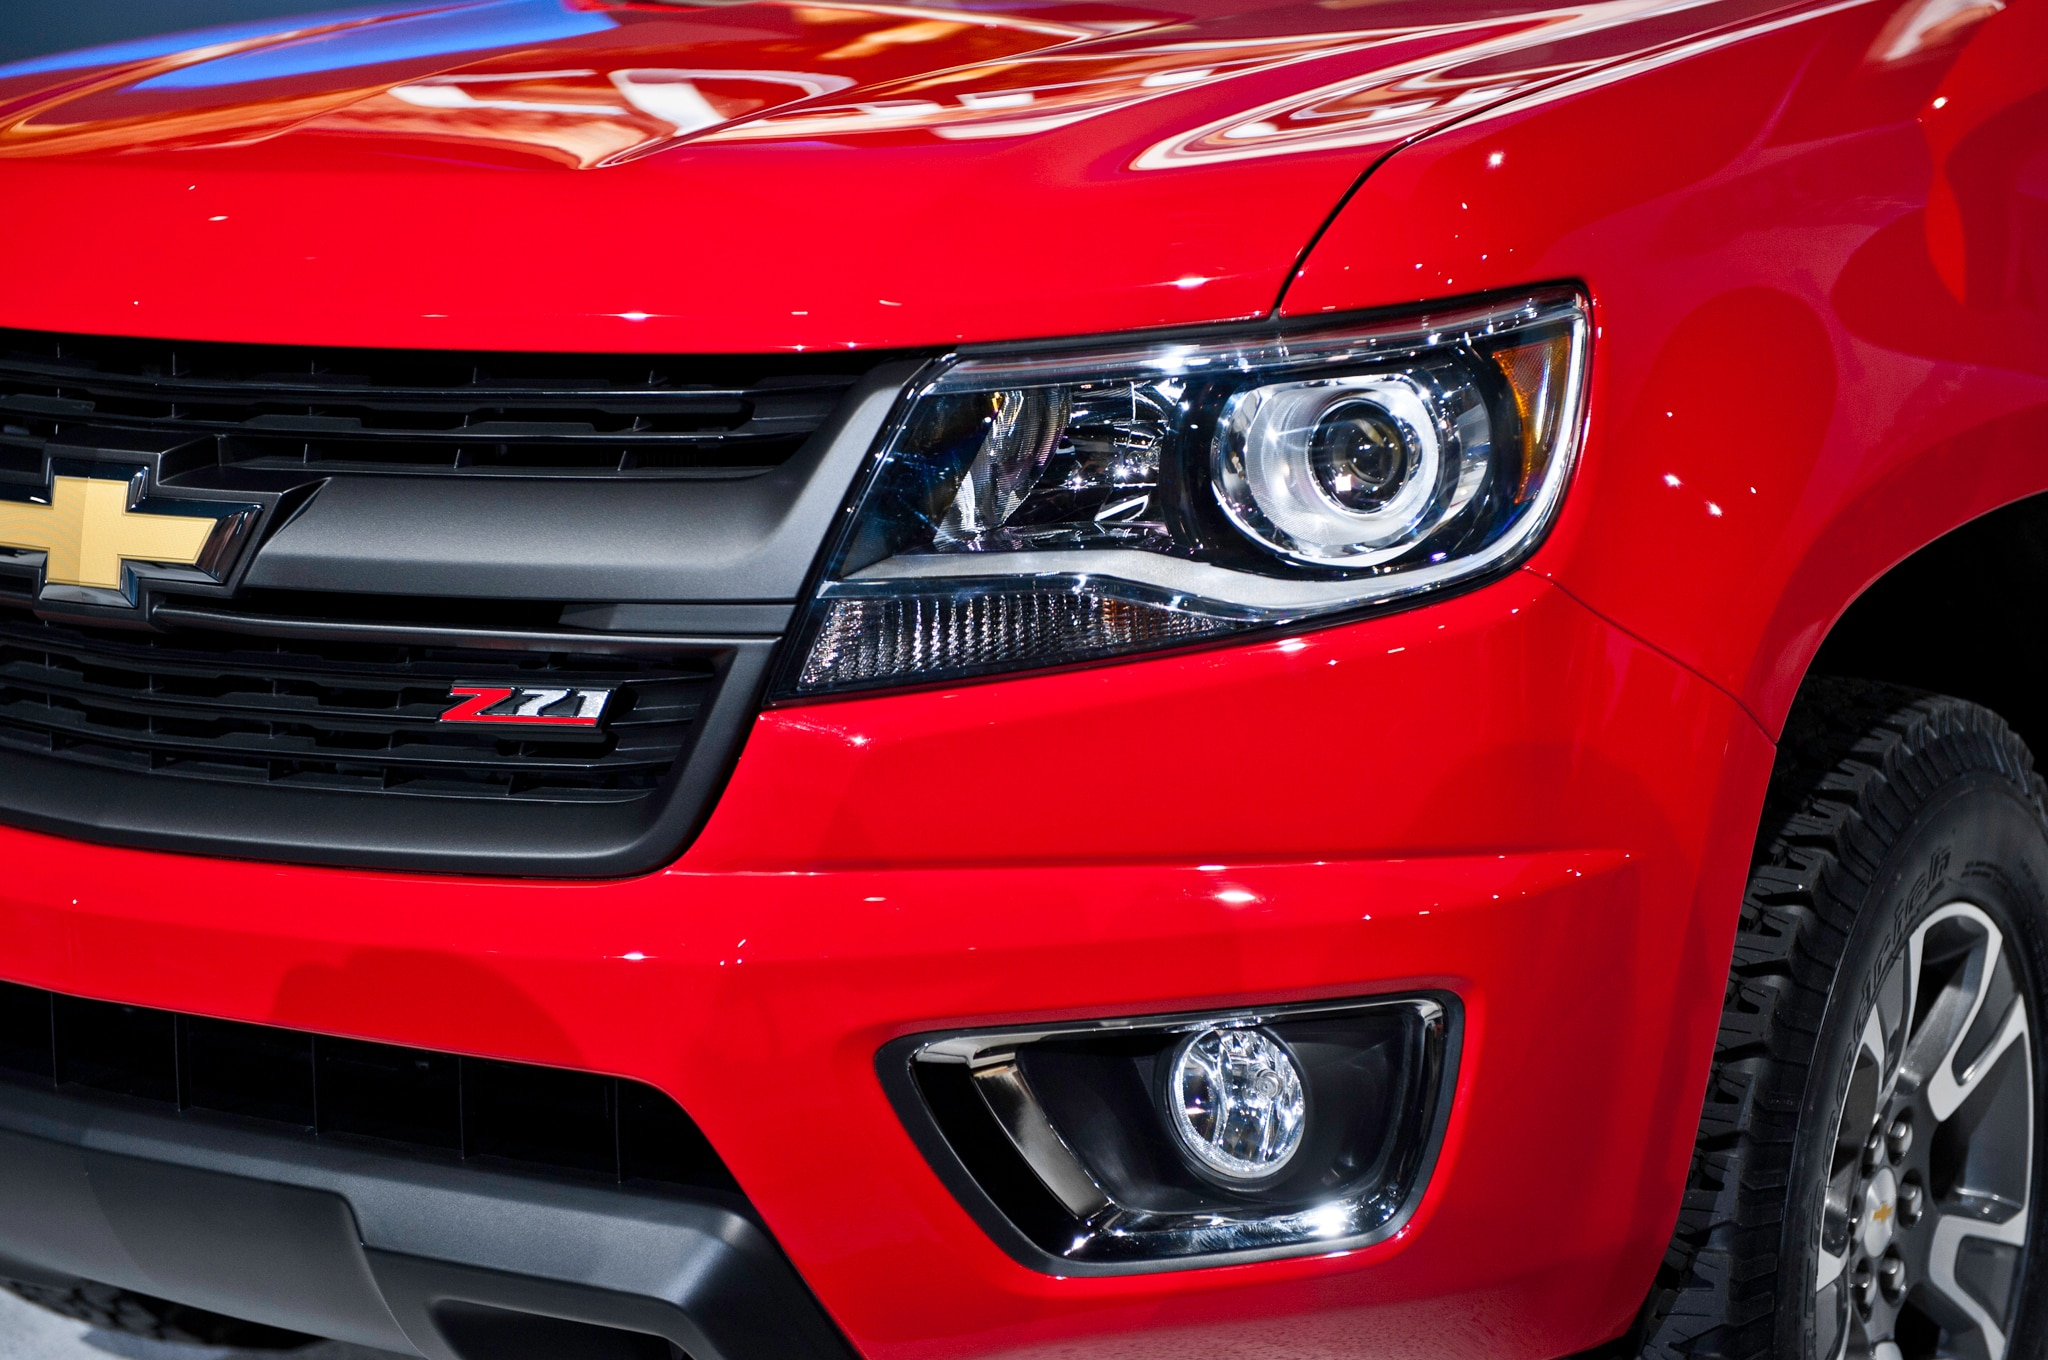 2015 Chevrolet Colorado headlight